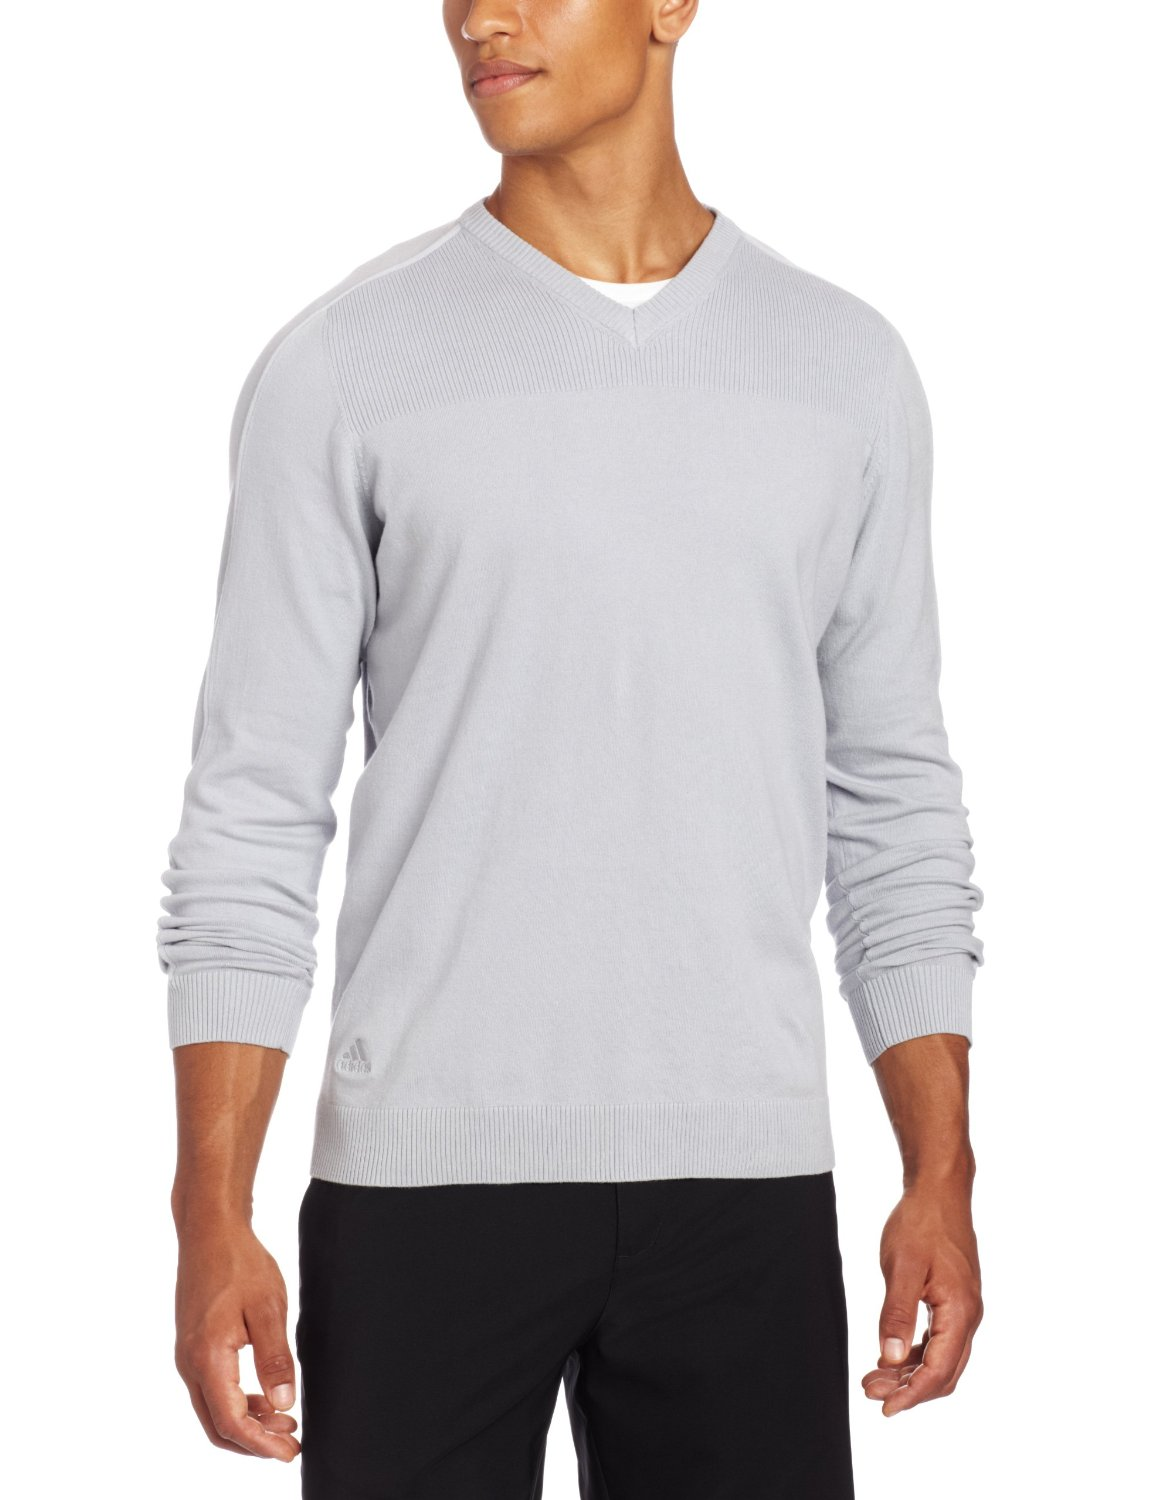 Mens Adidas Textured V-Neck Golf Pullovers